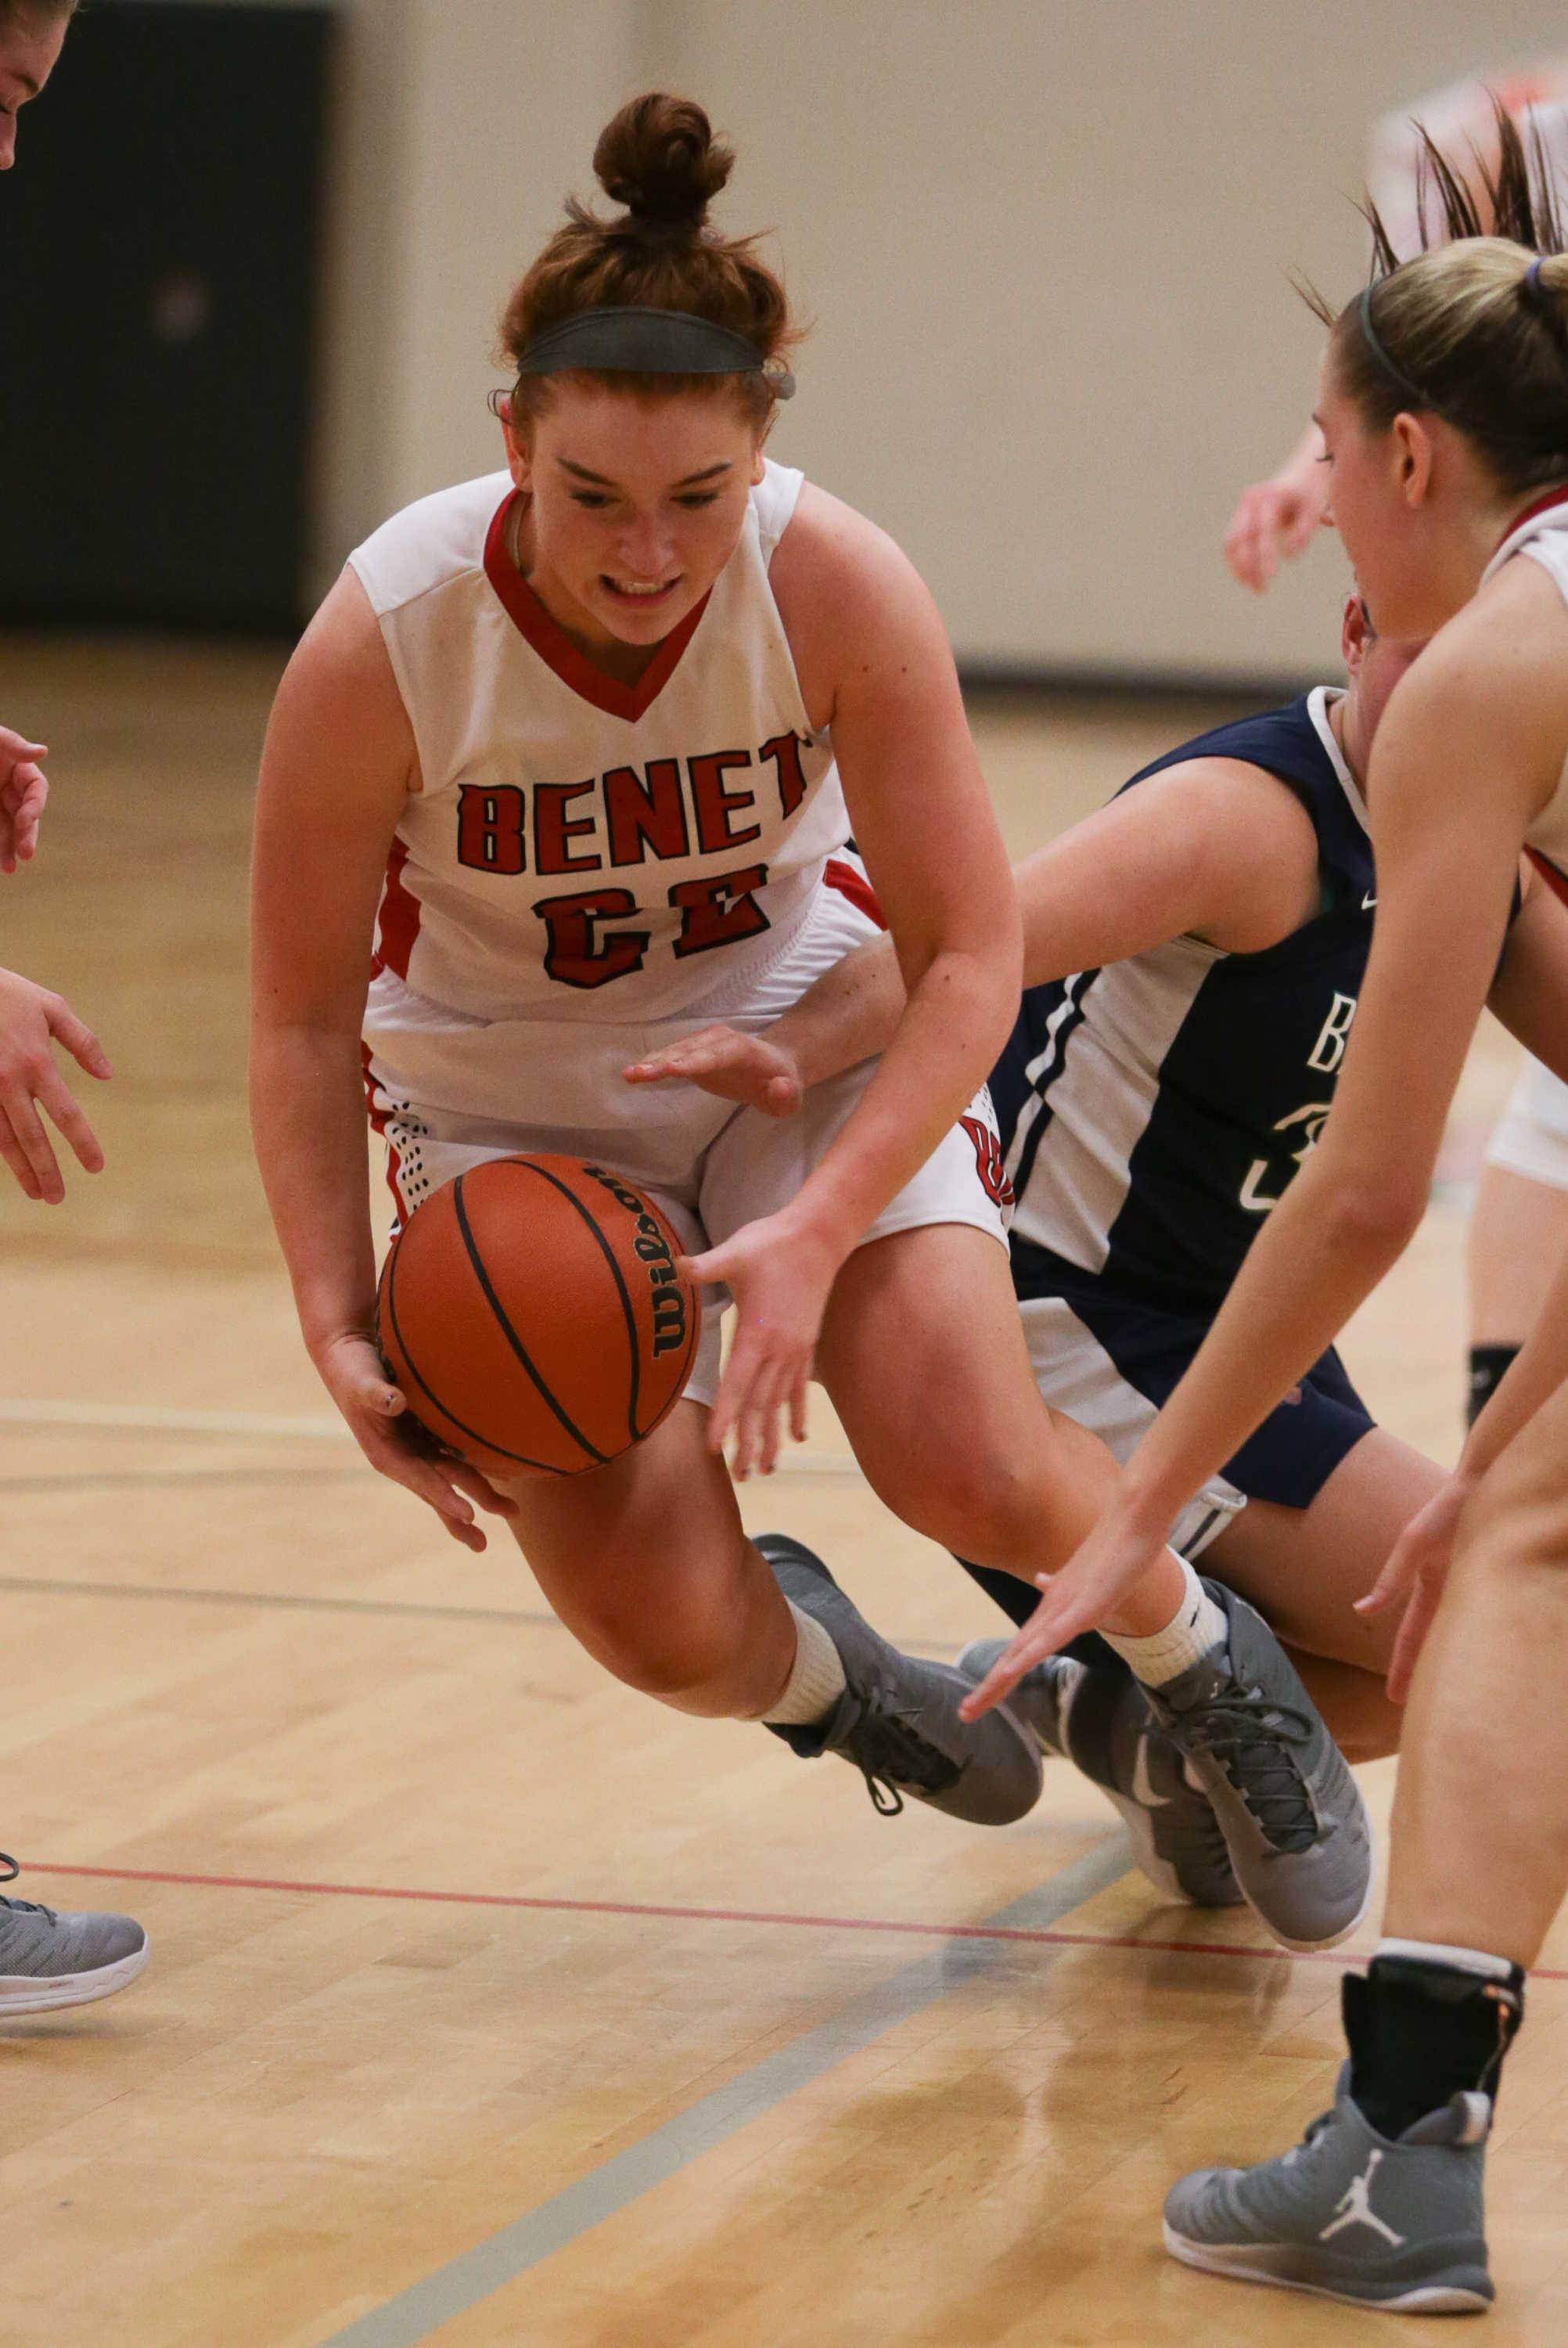 Sean King for the Daily Herald  Benet forward Kendal Schramek (22) dives for a loose ball against Bartlett at Benet Academy in Lisle, IL on Friday, November 18, 2016